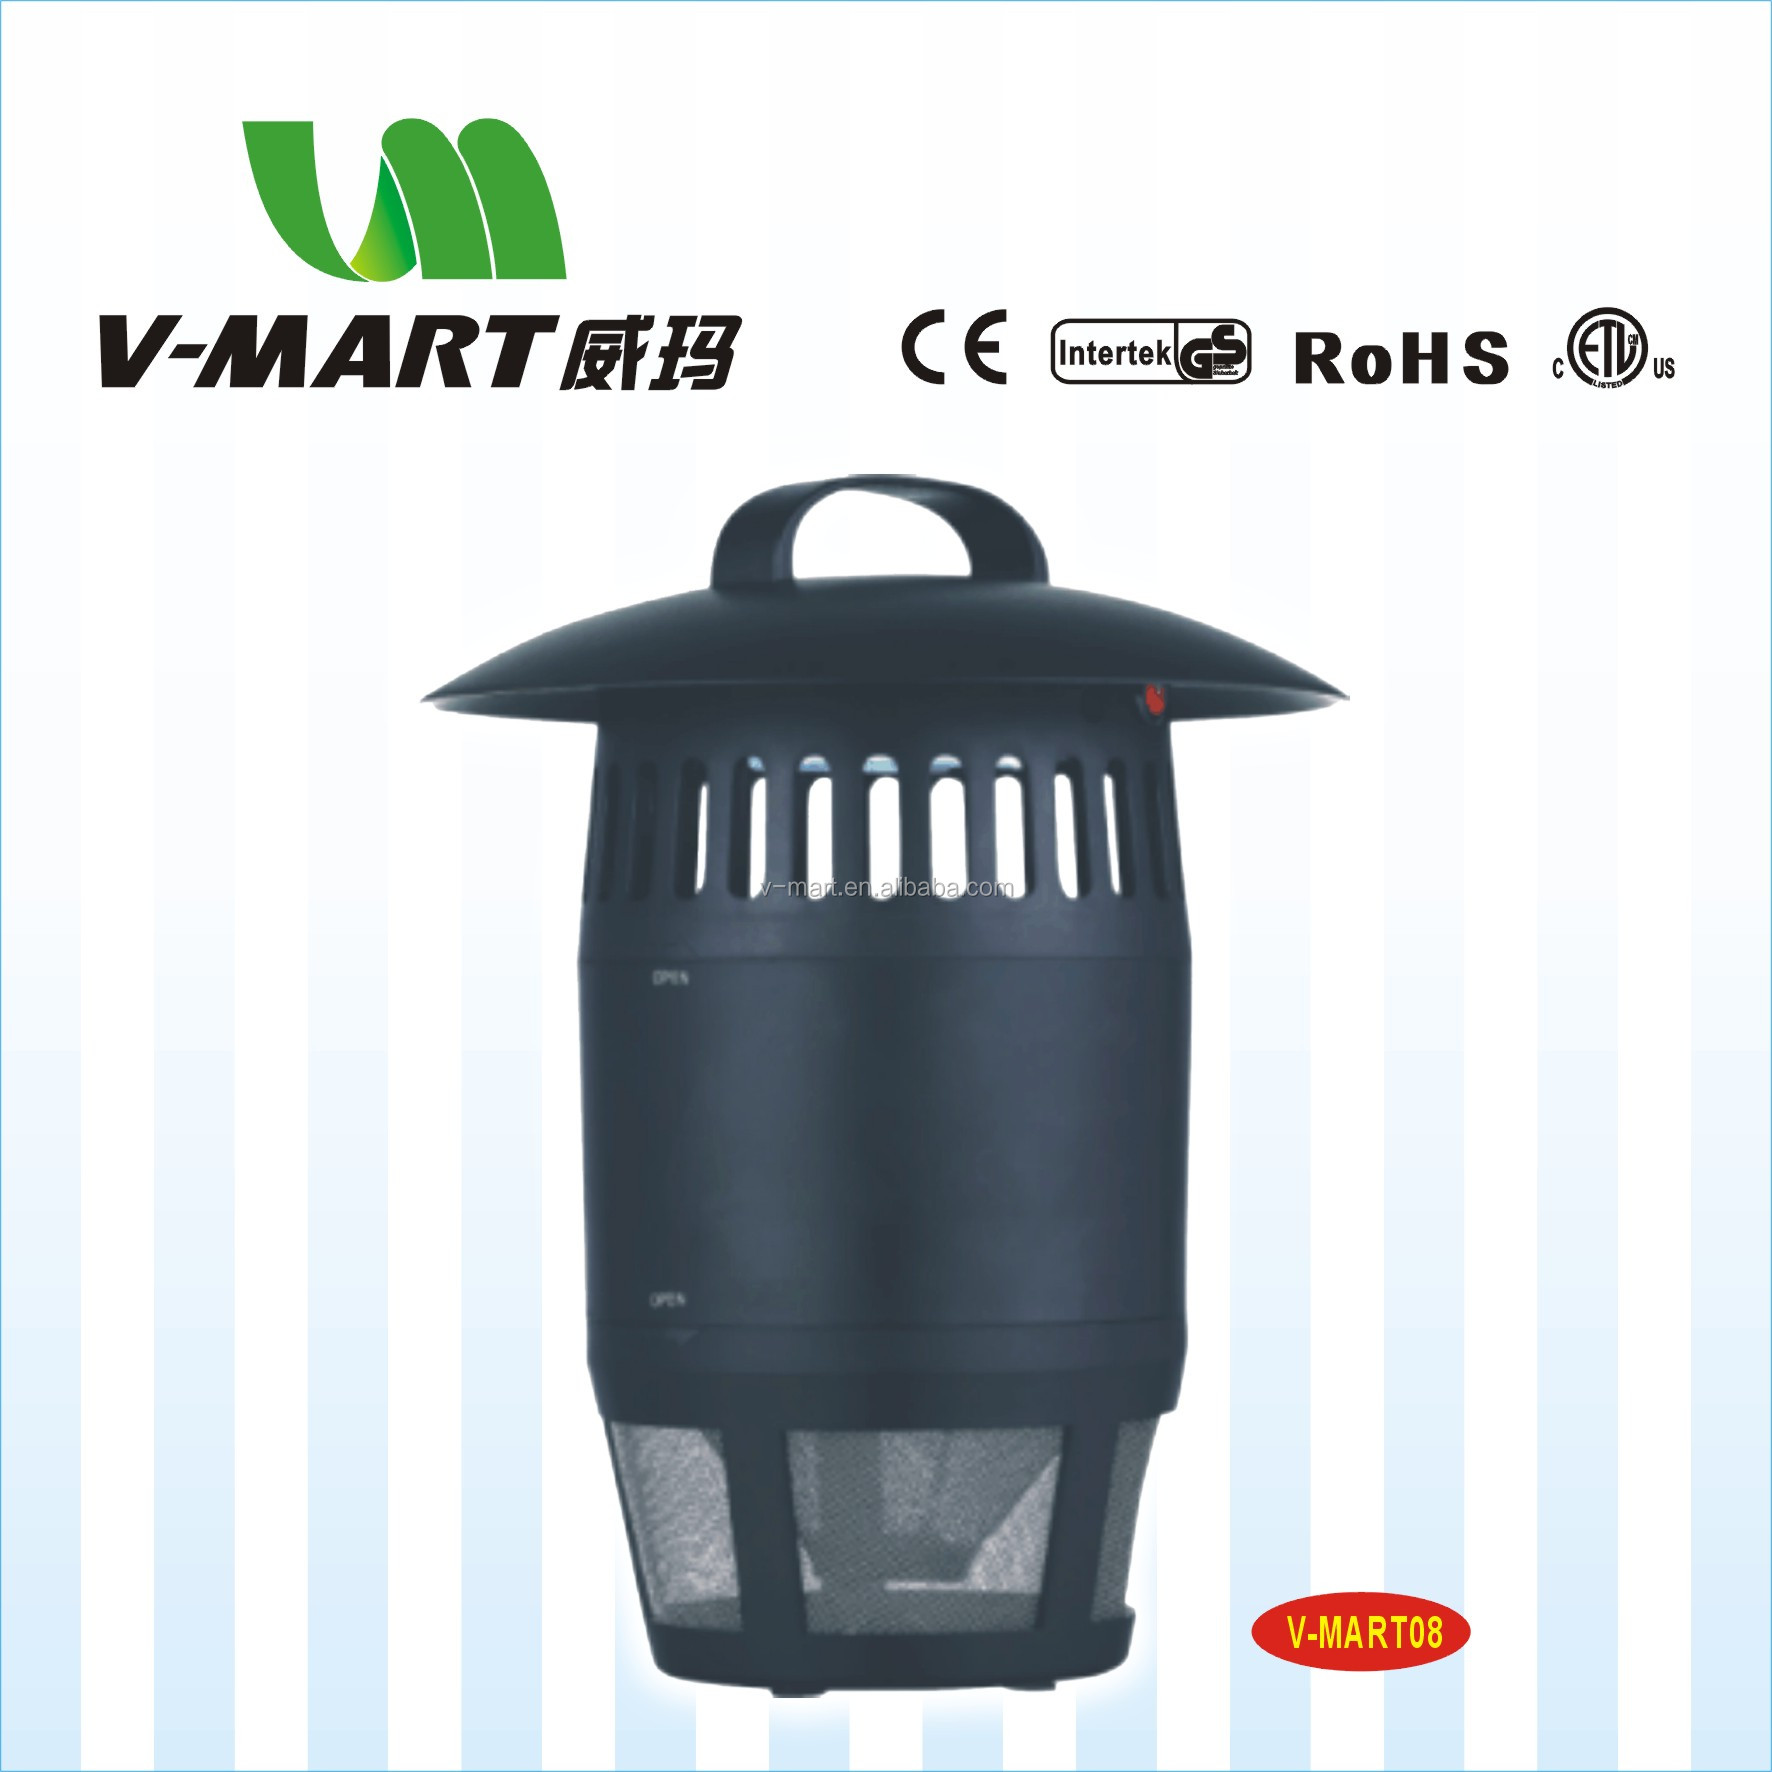 (V-MART08) mosquito coil for CE GS ROHS